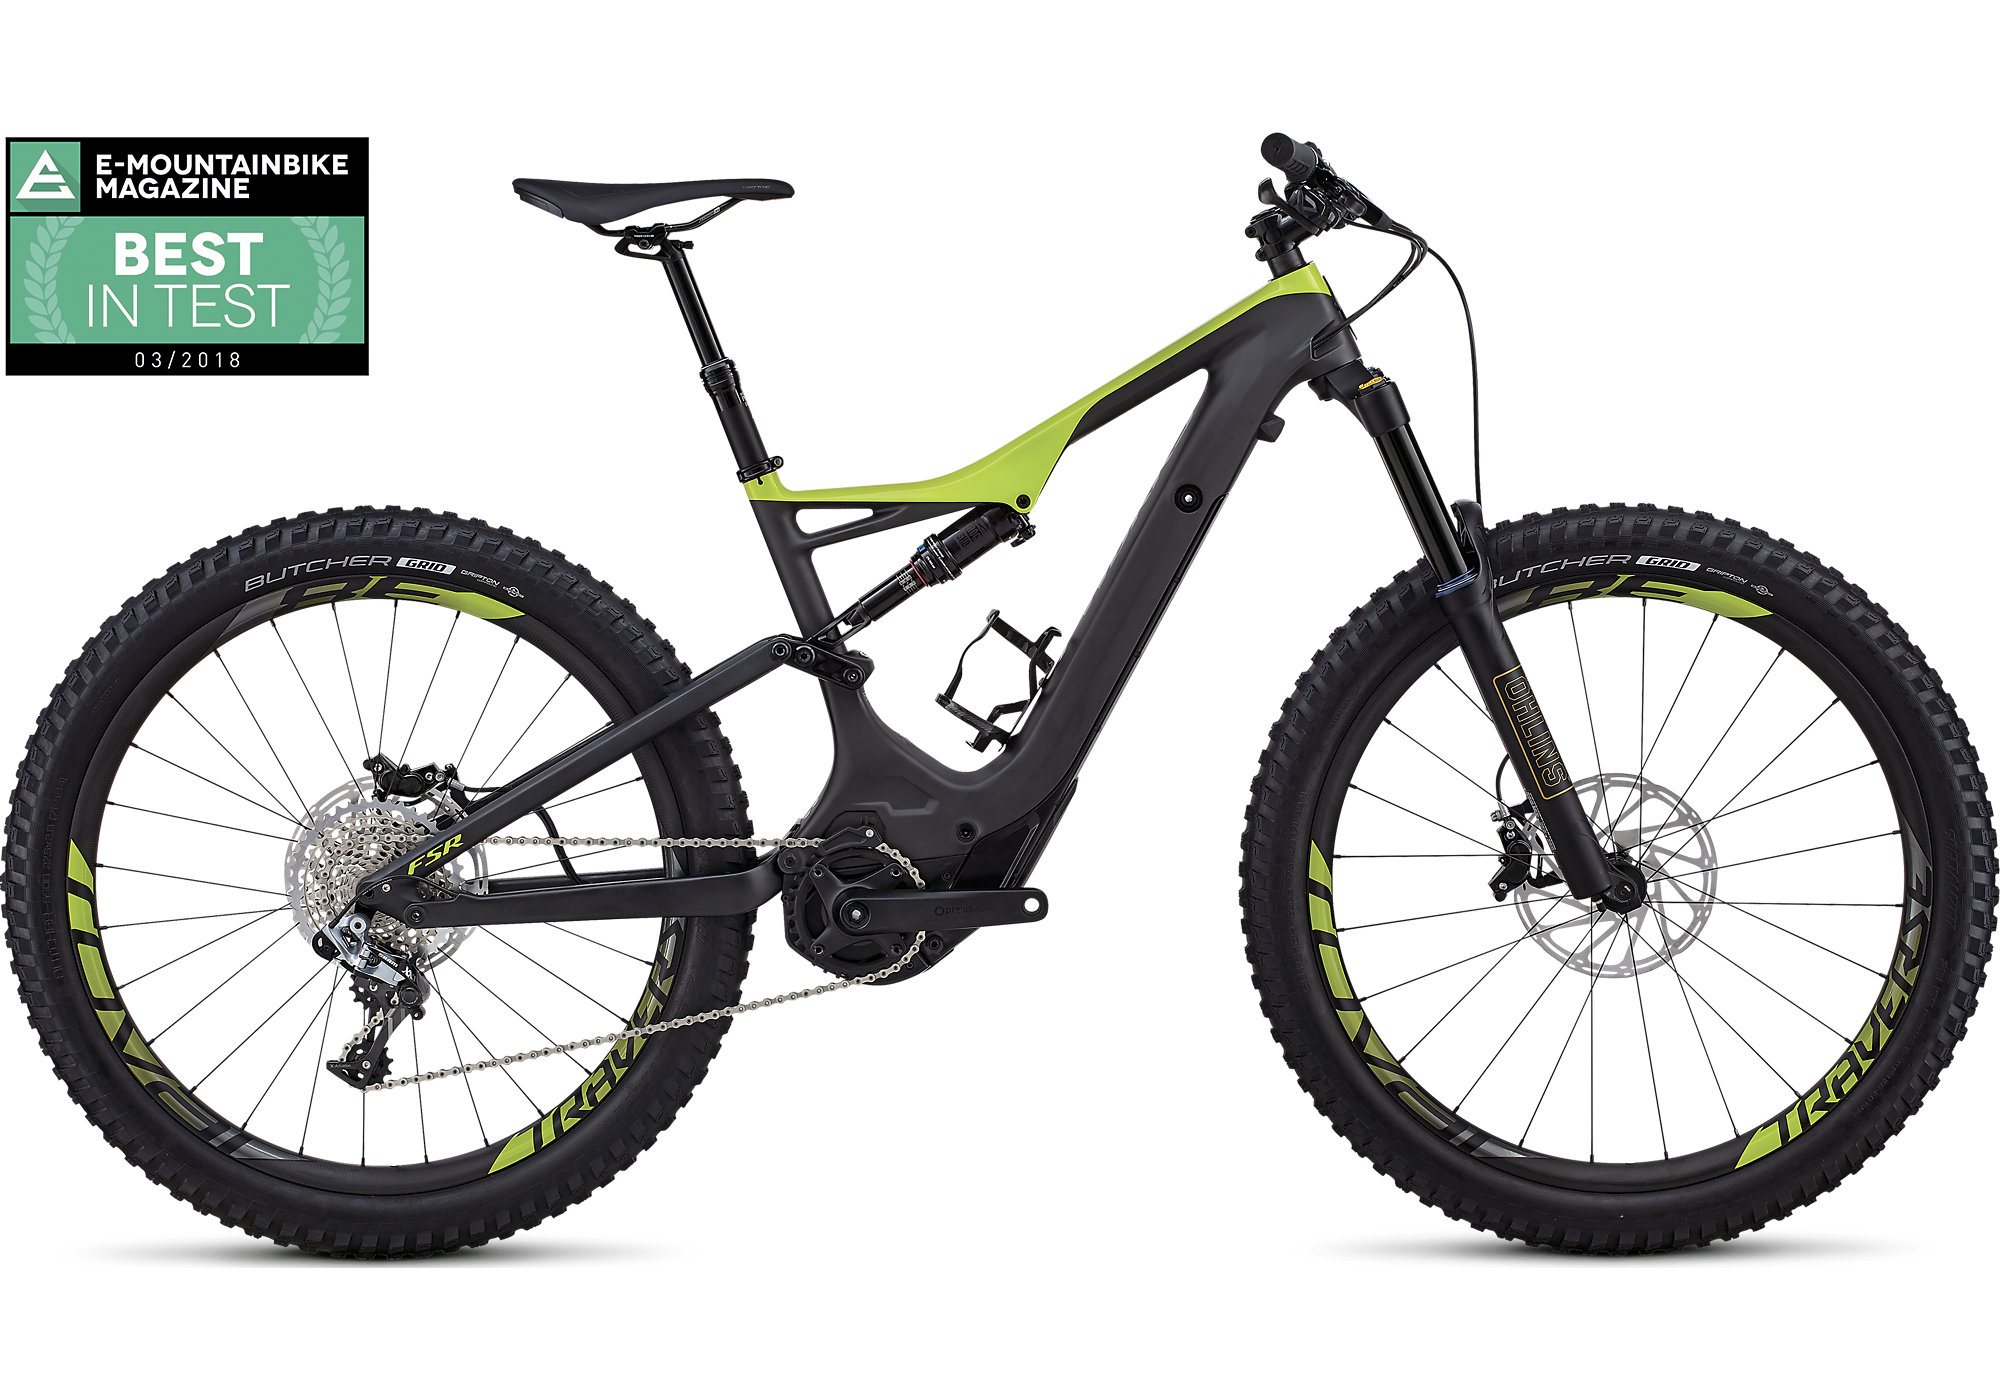 S-WORKS TURBO LEVO FSR 6FATTIE 29